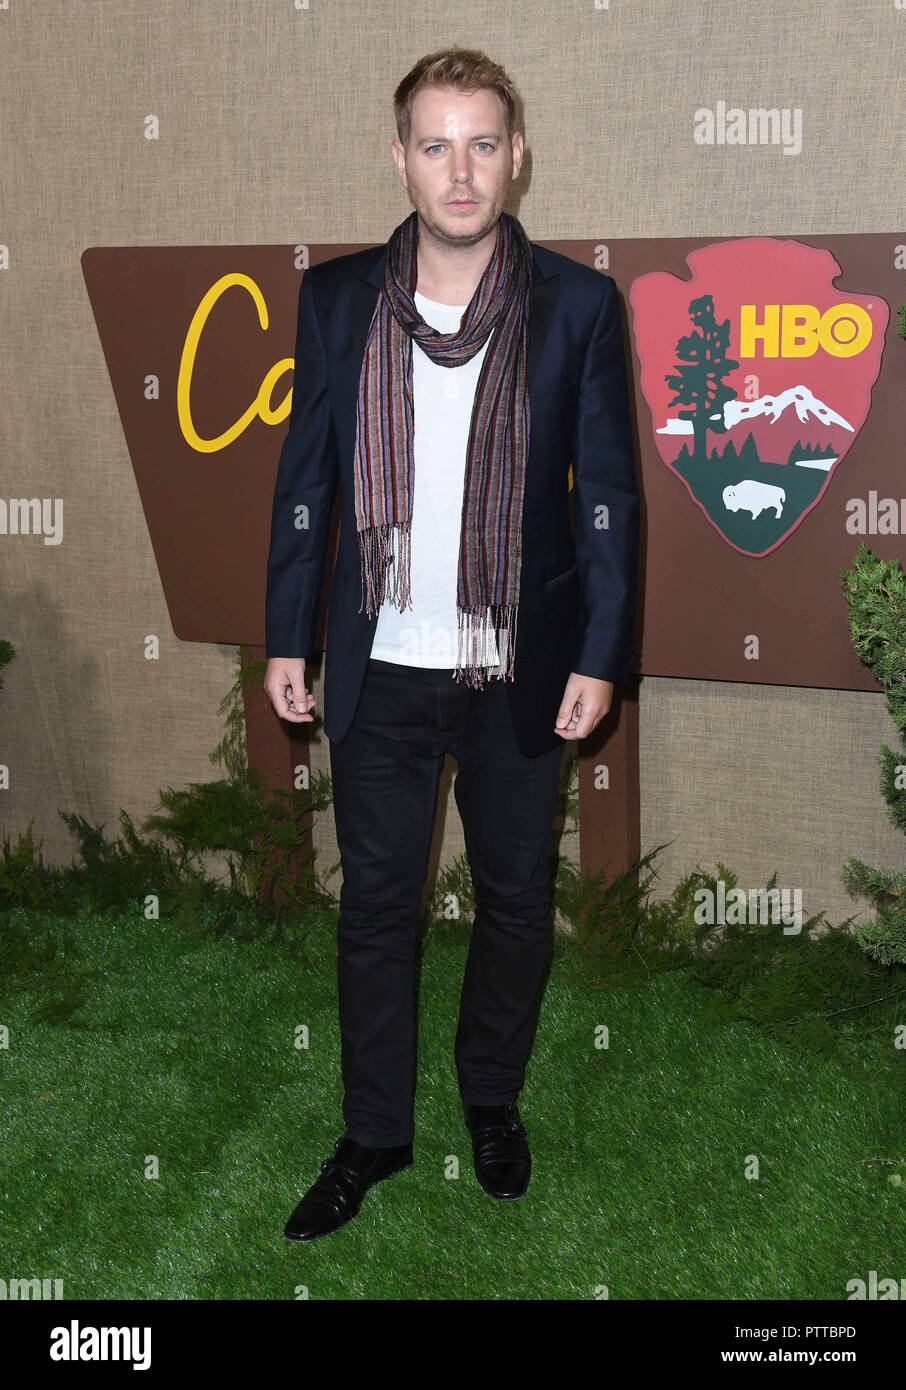 Los Angeles, CA, USA. 10th Oct, 2018. 10 October 2018 - Los Angeles, California - Christian Brassington. HBO's ''Camping''Los Angeles Premiere held at Photo Credit: Birdie Thompson/AdMedia Credit: Birdie Thompson/AdMedia/ZUMA Wire/Alamy Live News - Stock Image